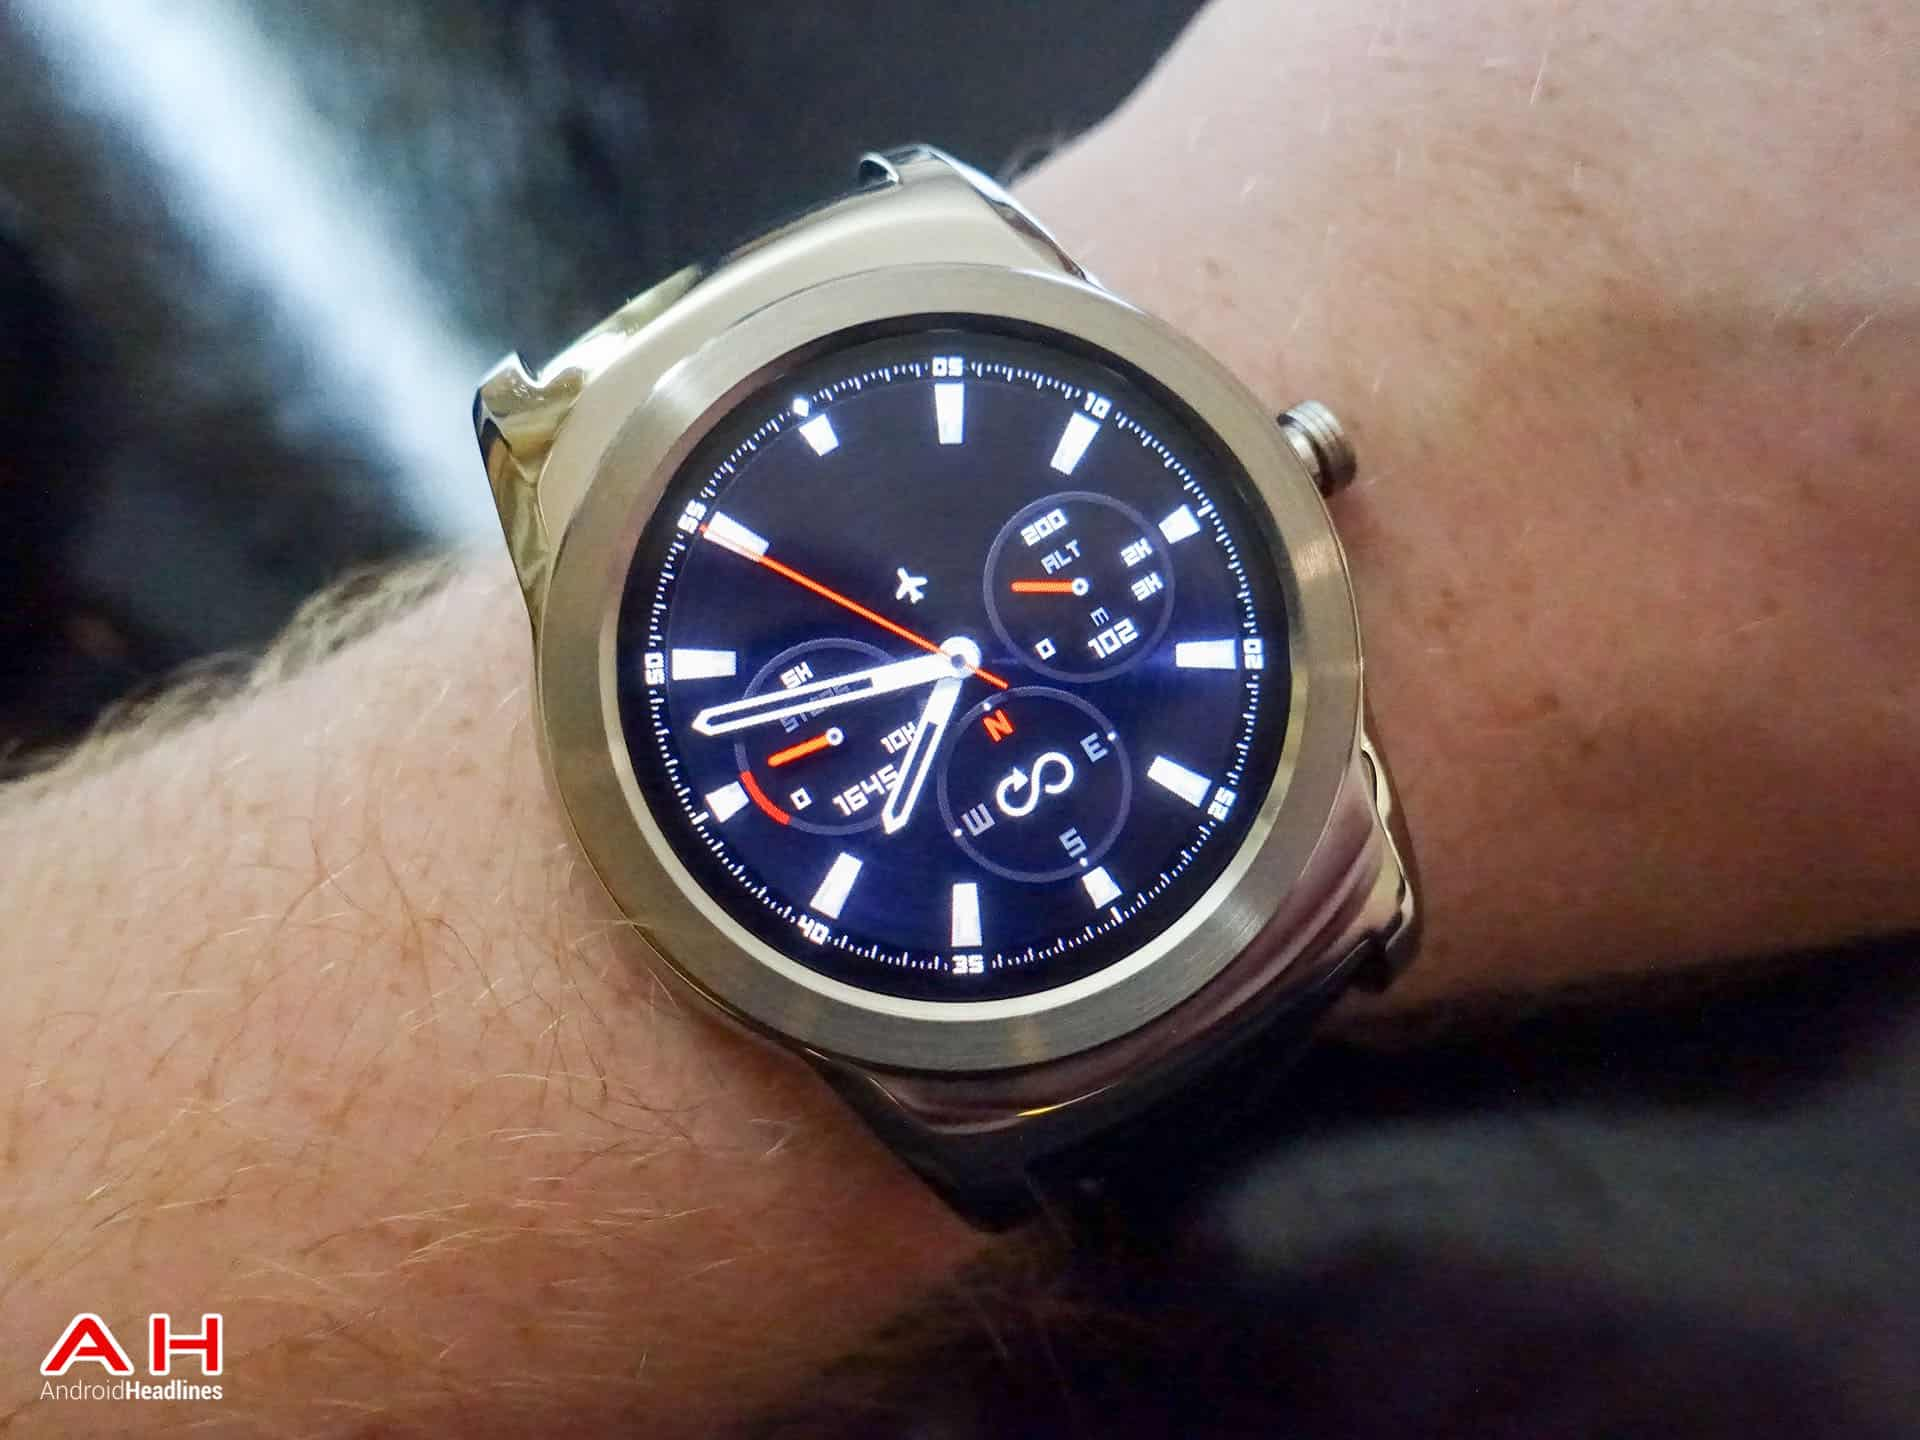 LG Watch Urbane Review AH 21